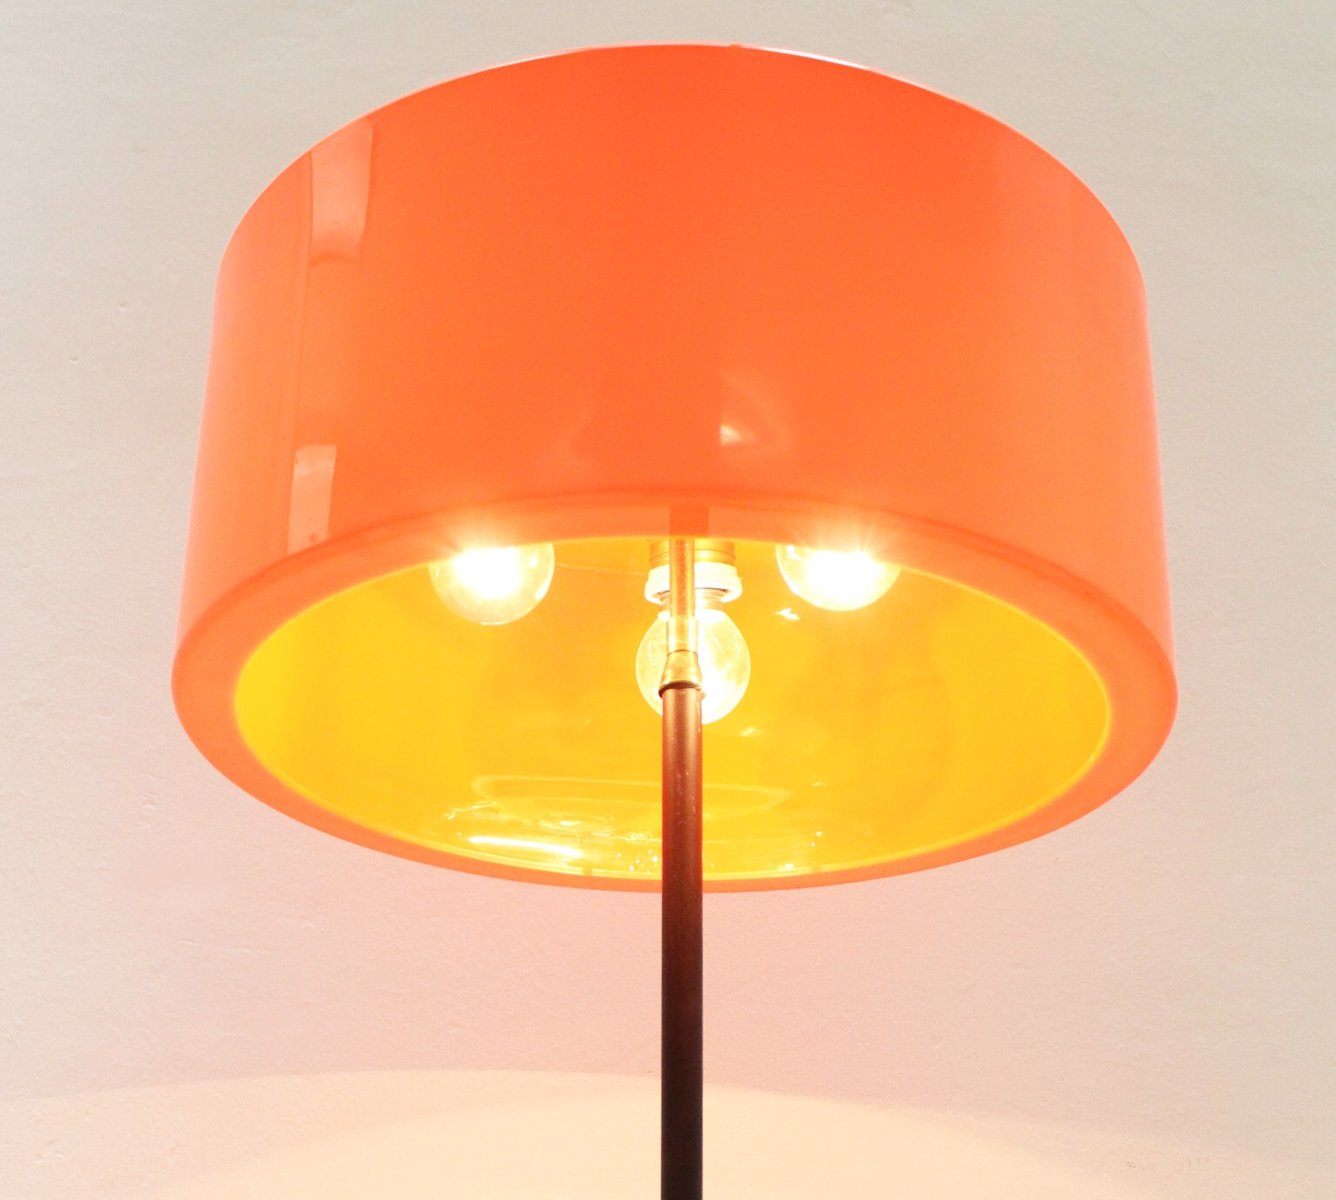 italian floor lamp with orange shade s for sale at pamono - price per piece